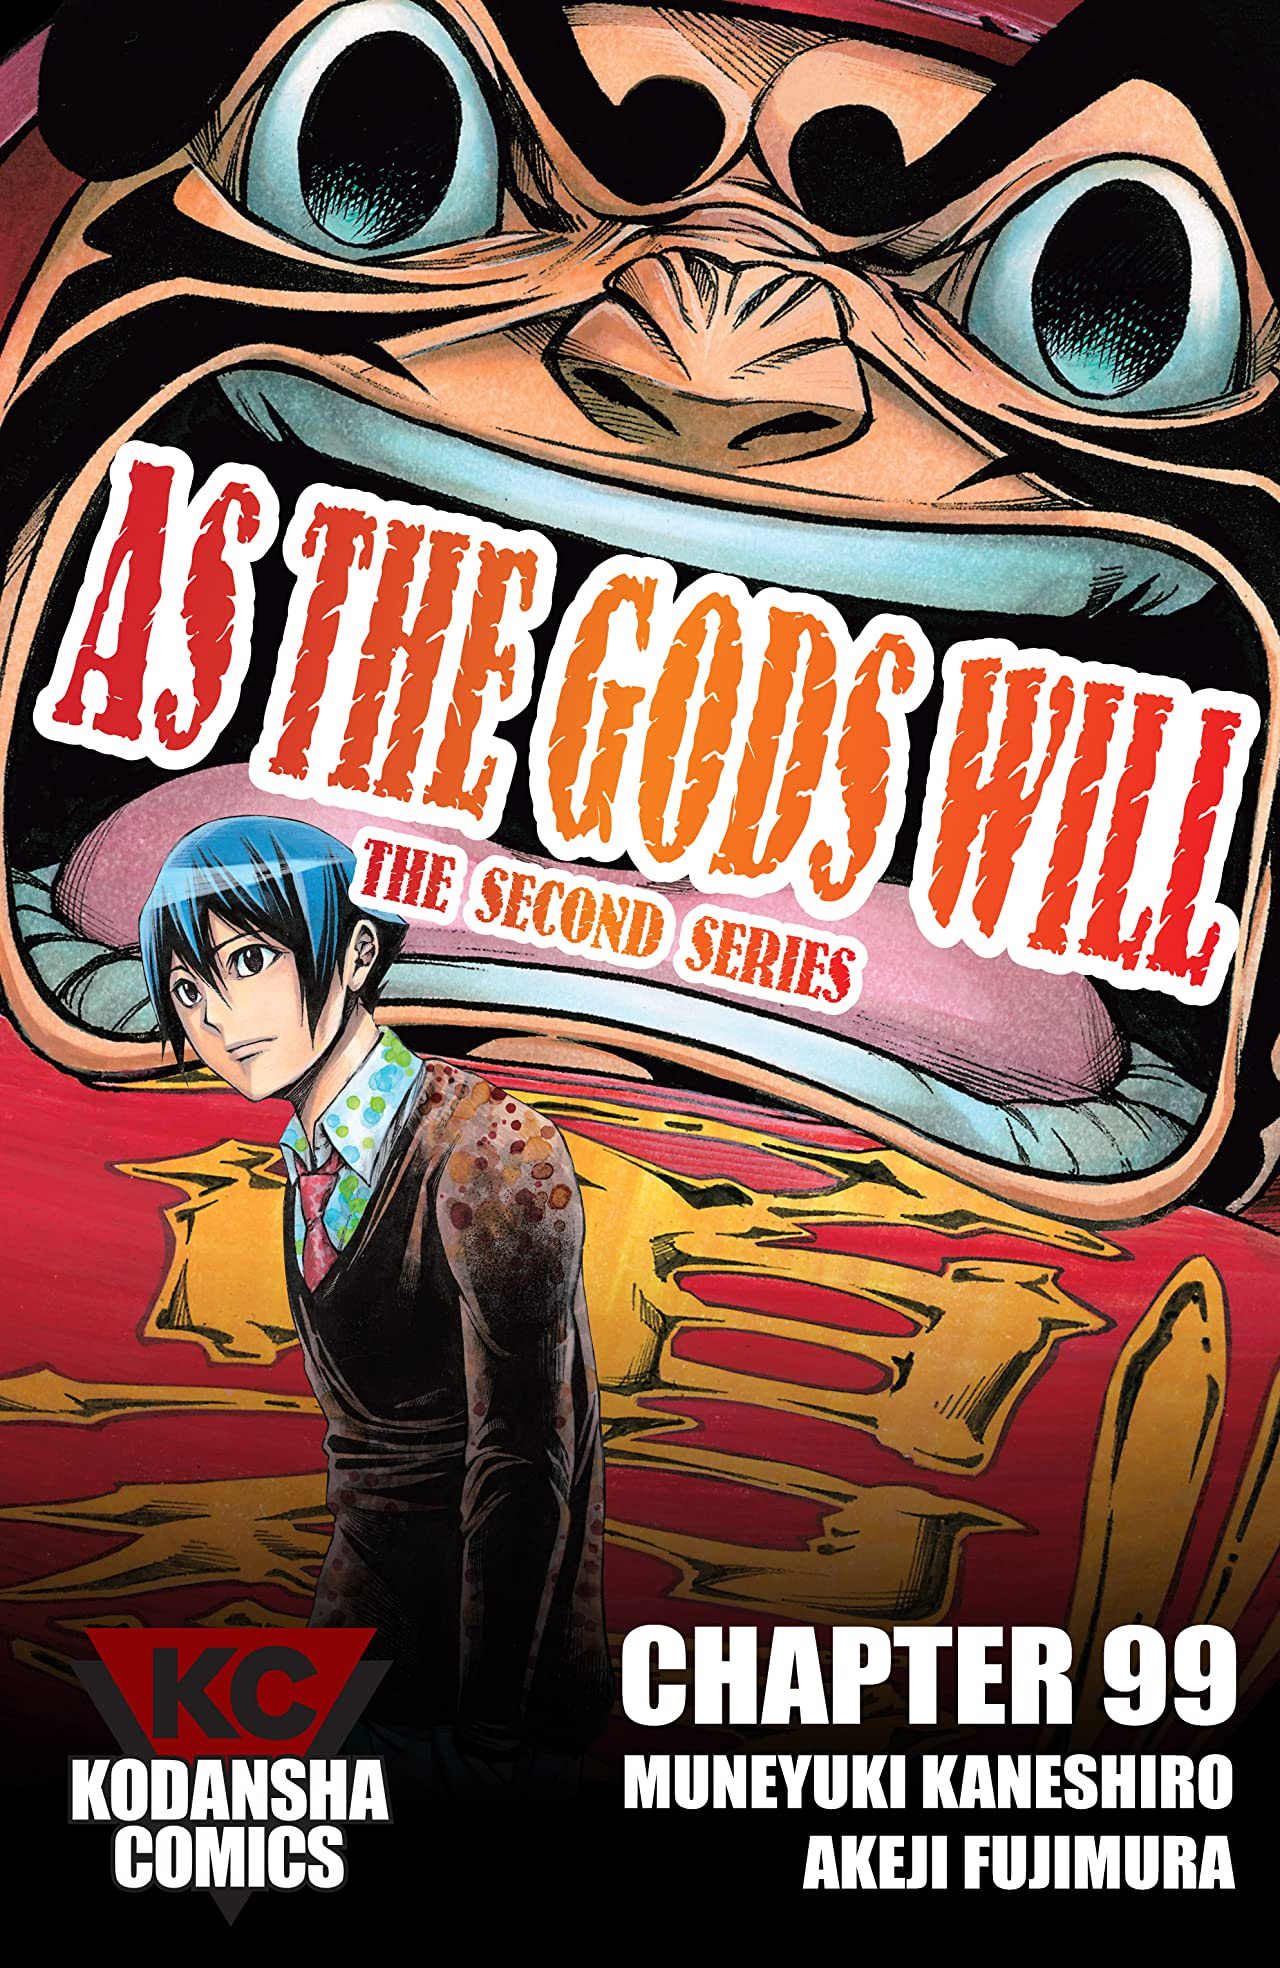 As The Gods Will: The Second Series #99